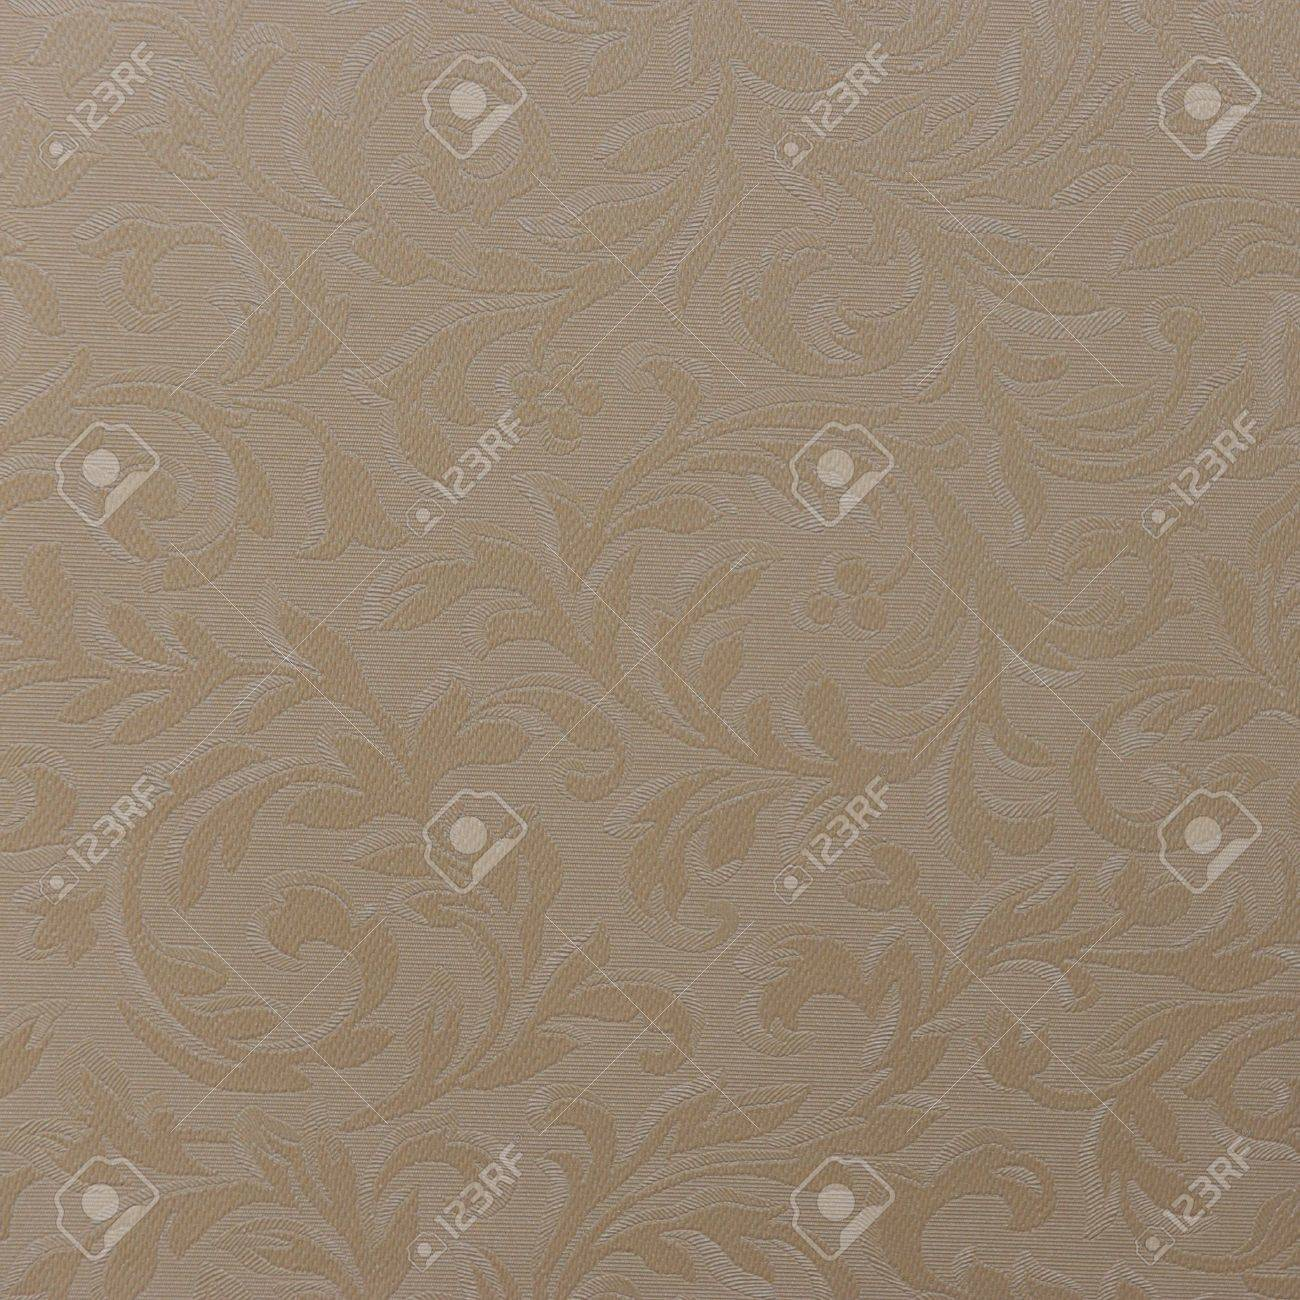 Seamless background for textile design. Wallpaper pattern Stock Photo - 14247663